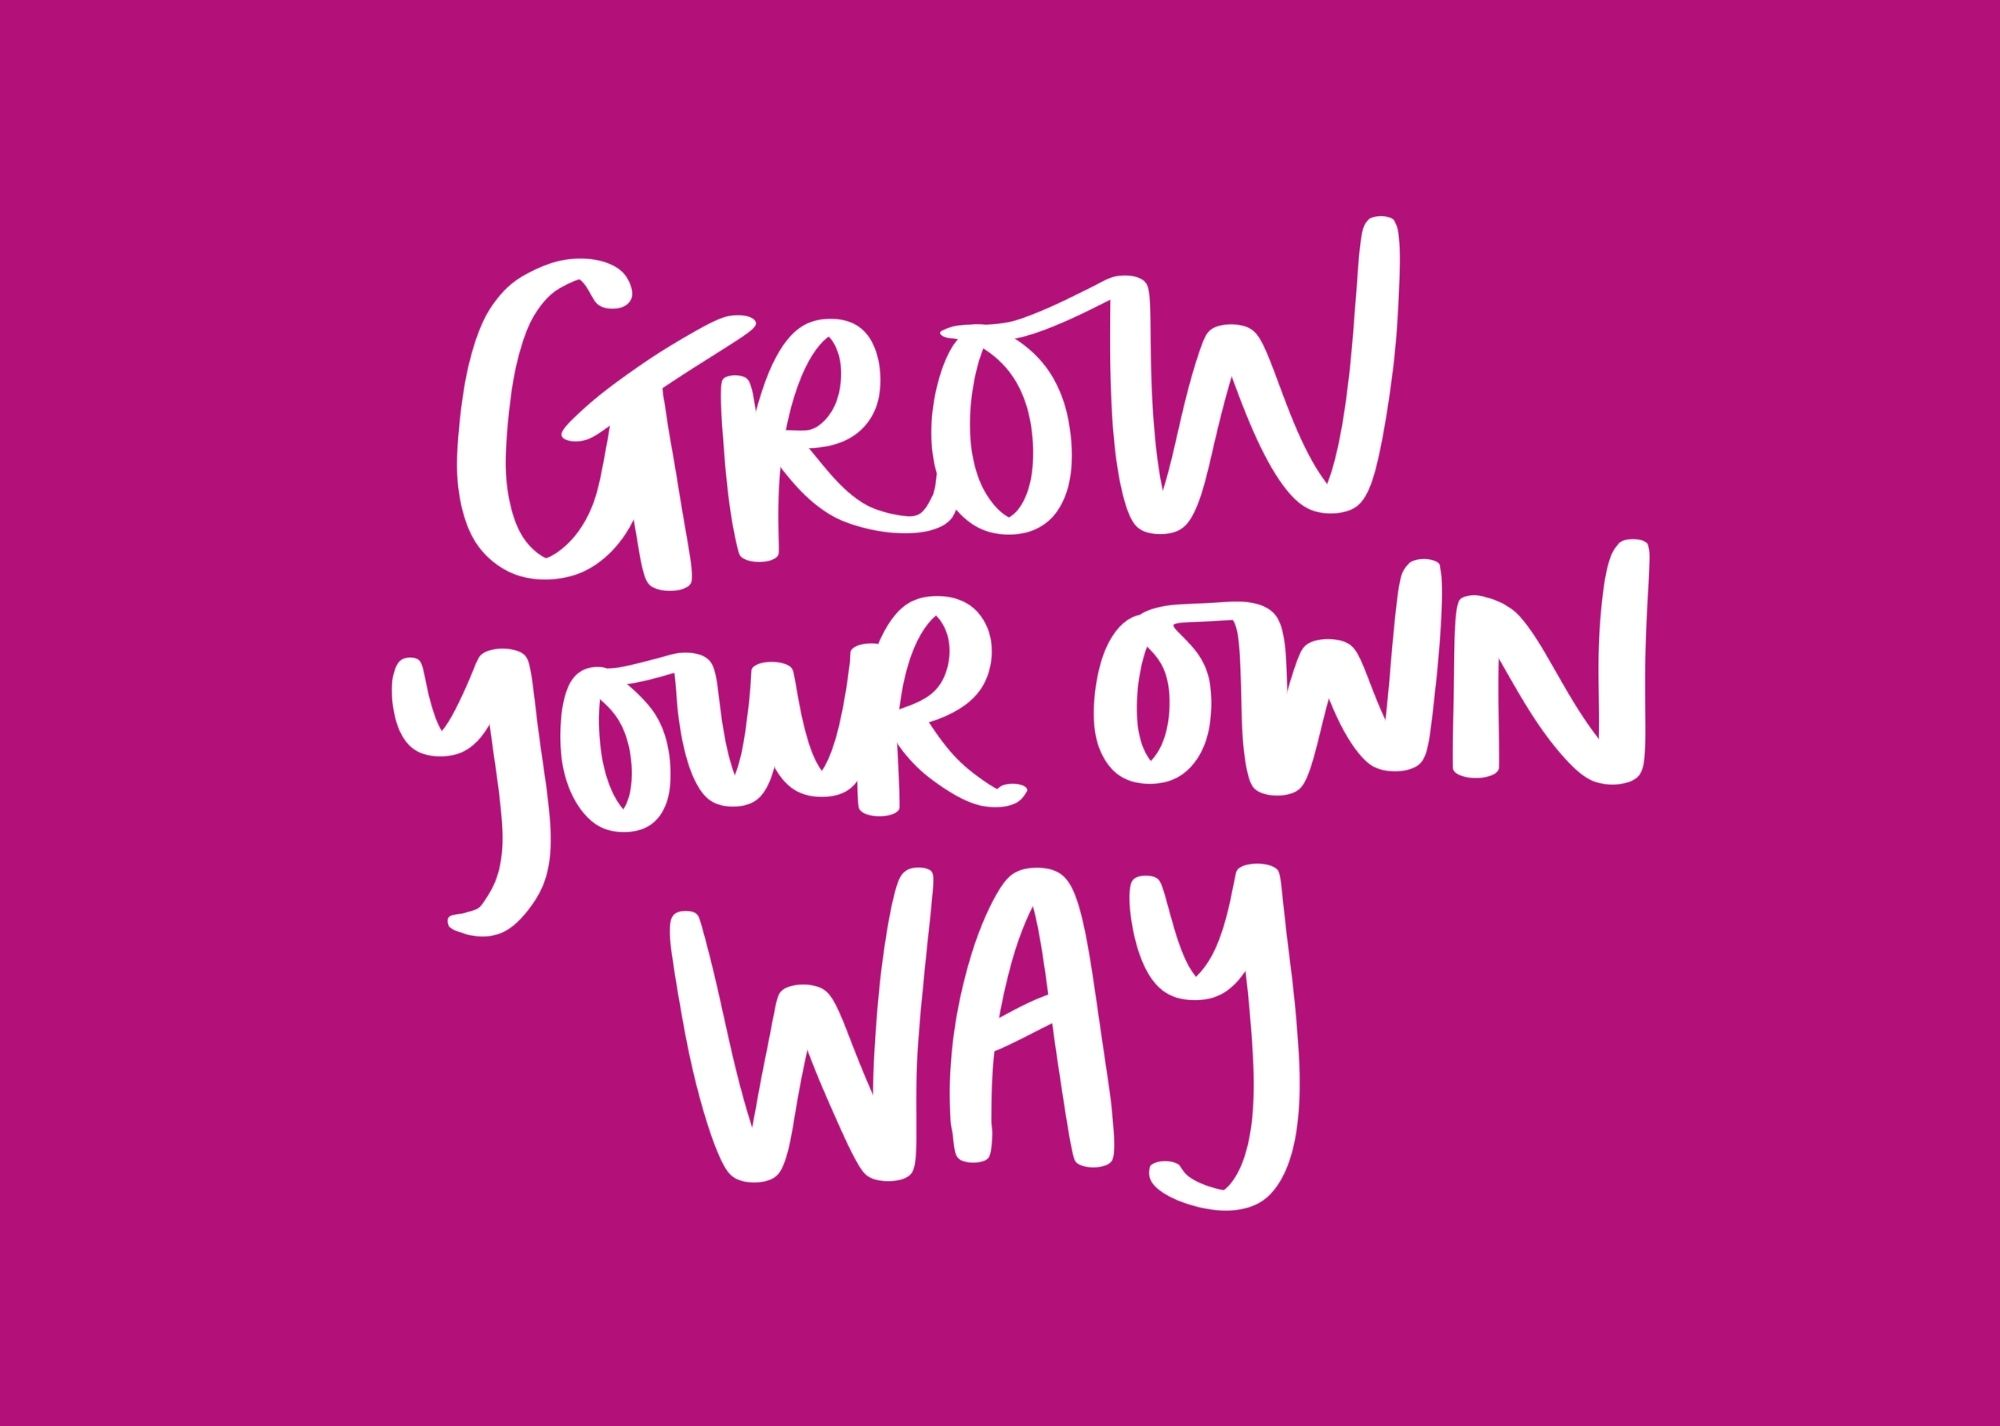 Grow your own way - magenta